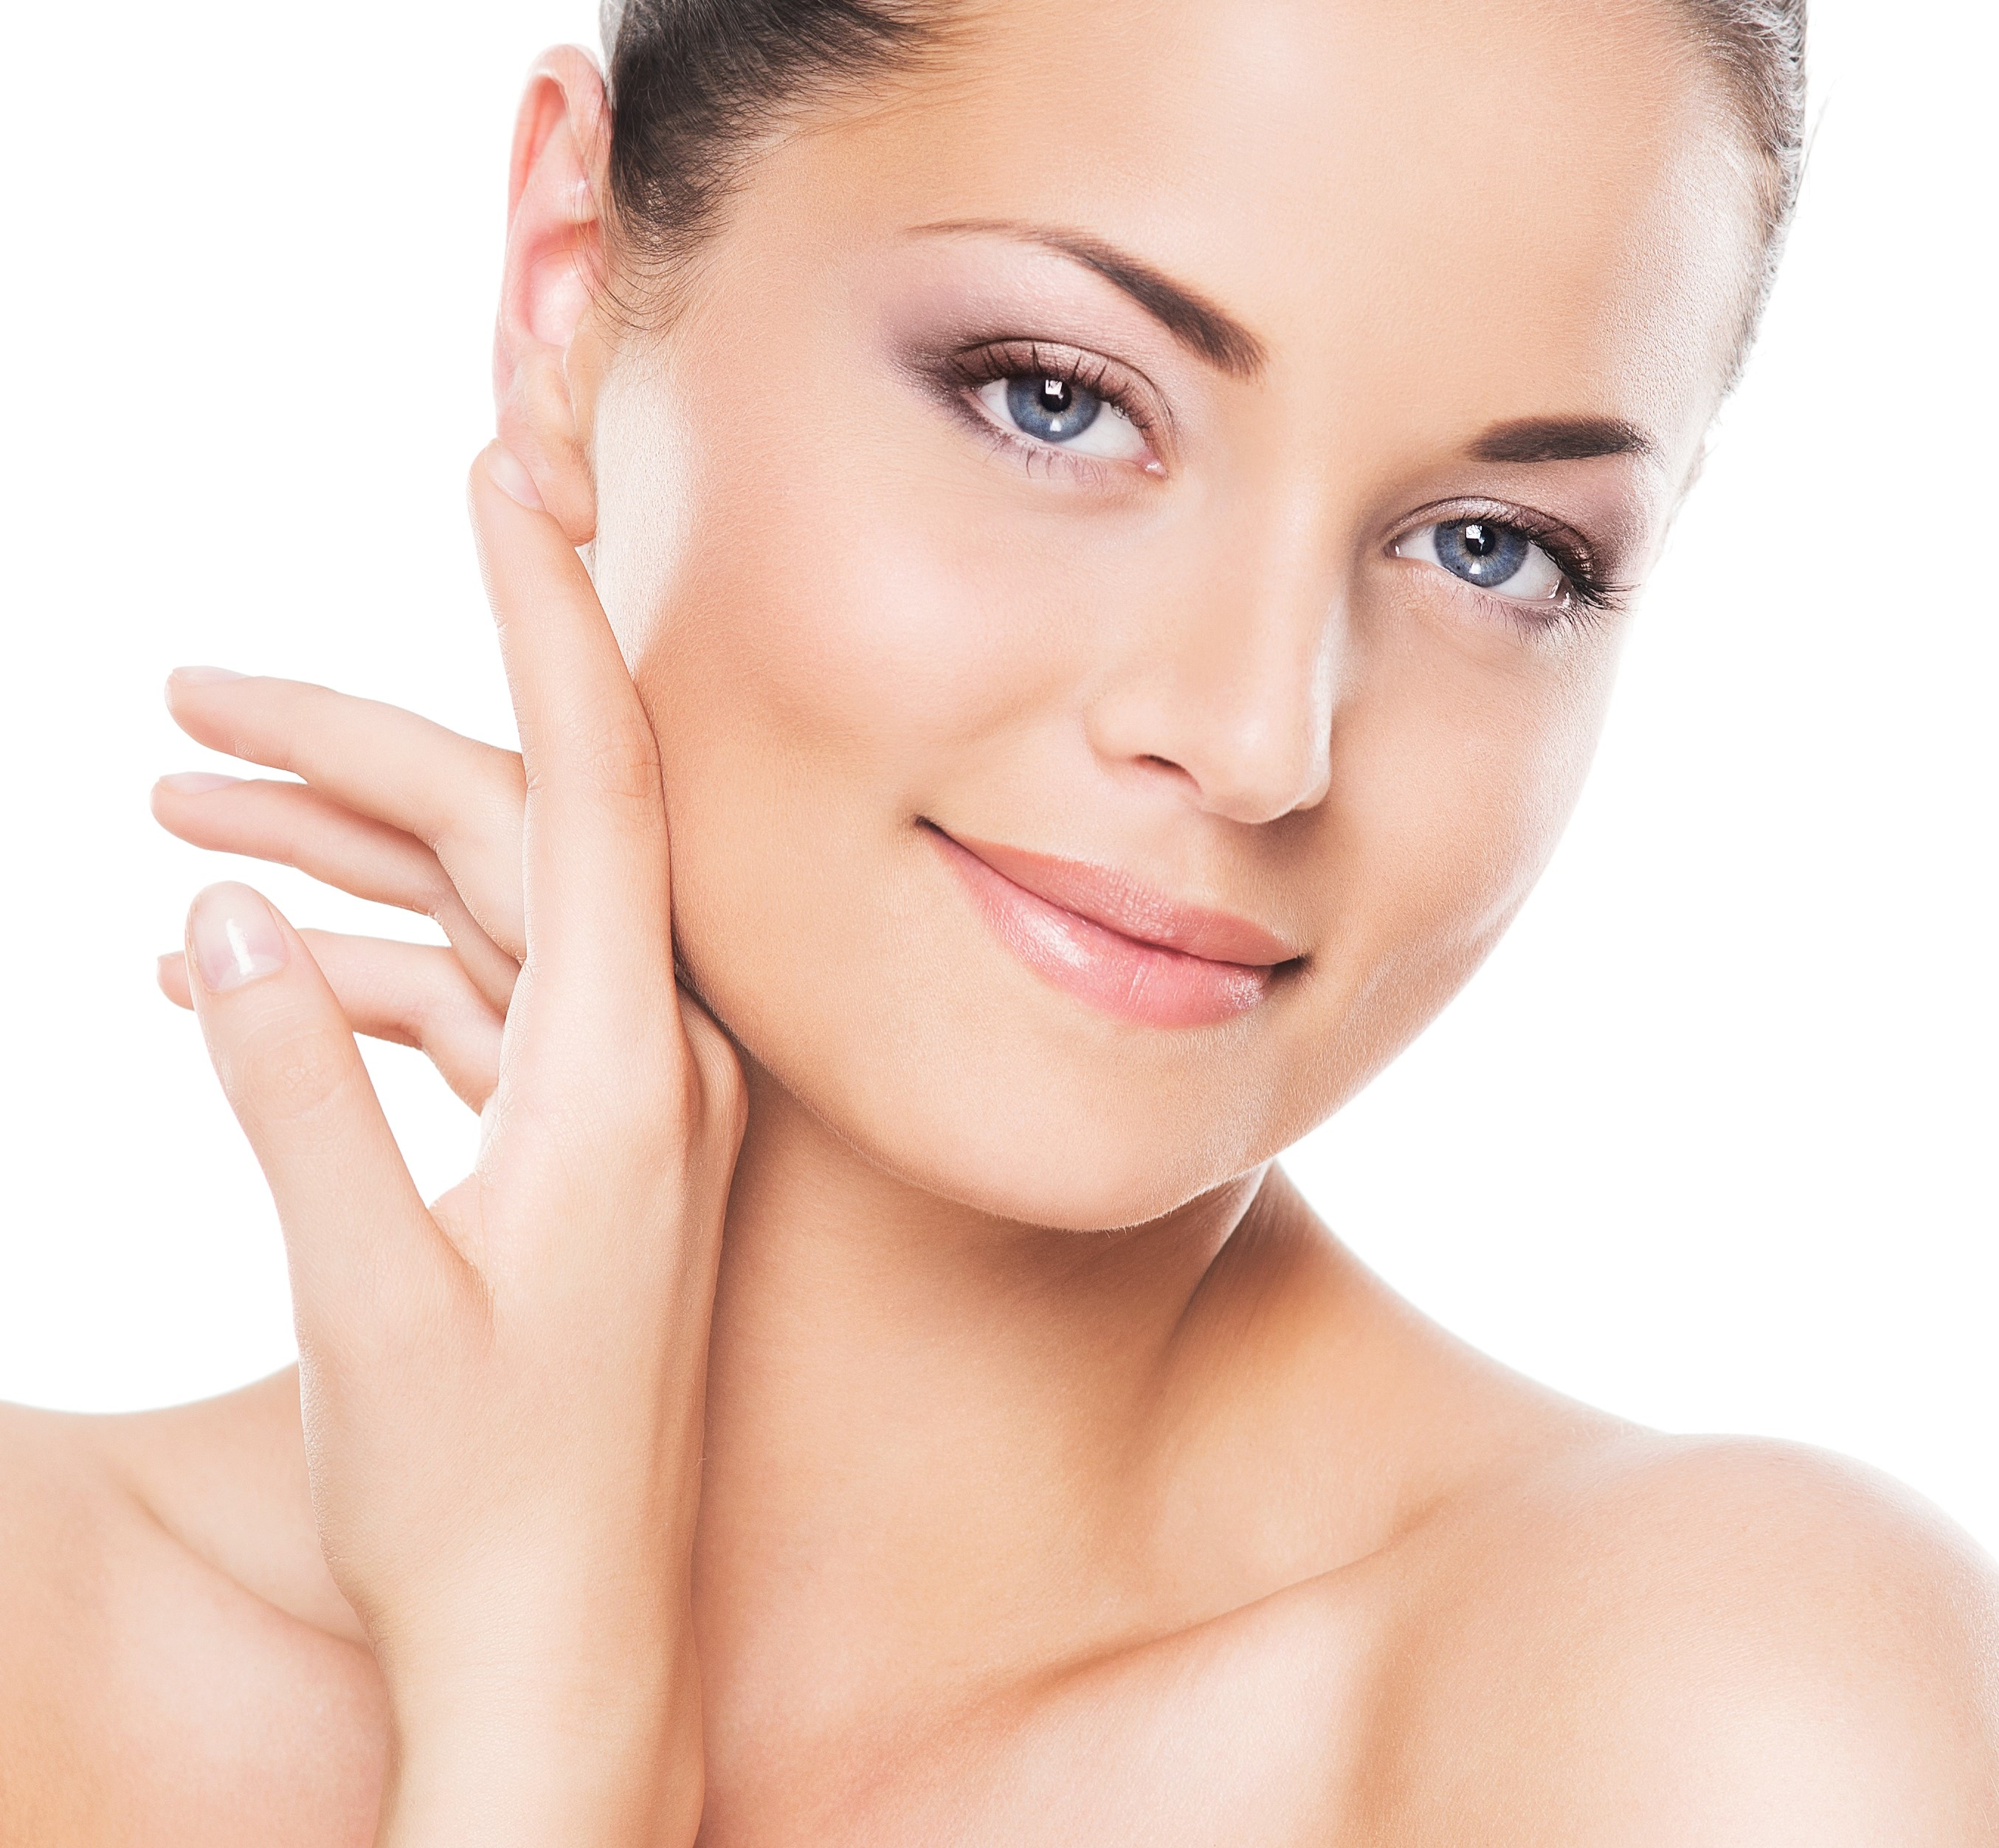 Image result for Get practically Painless Treatments using Technology Safe for all Skin Tones